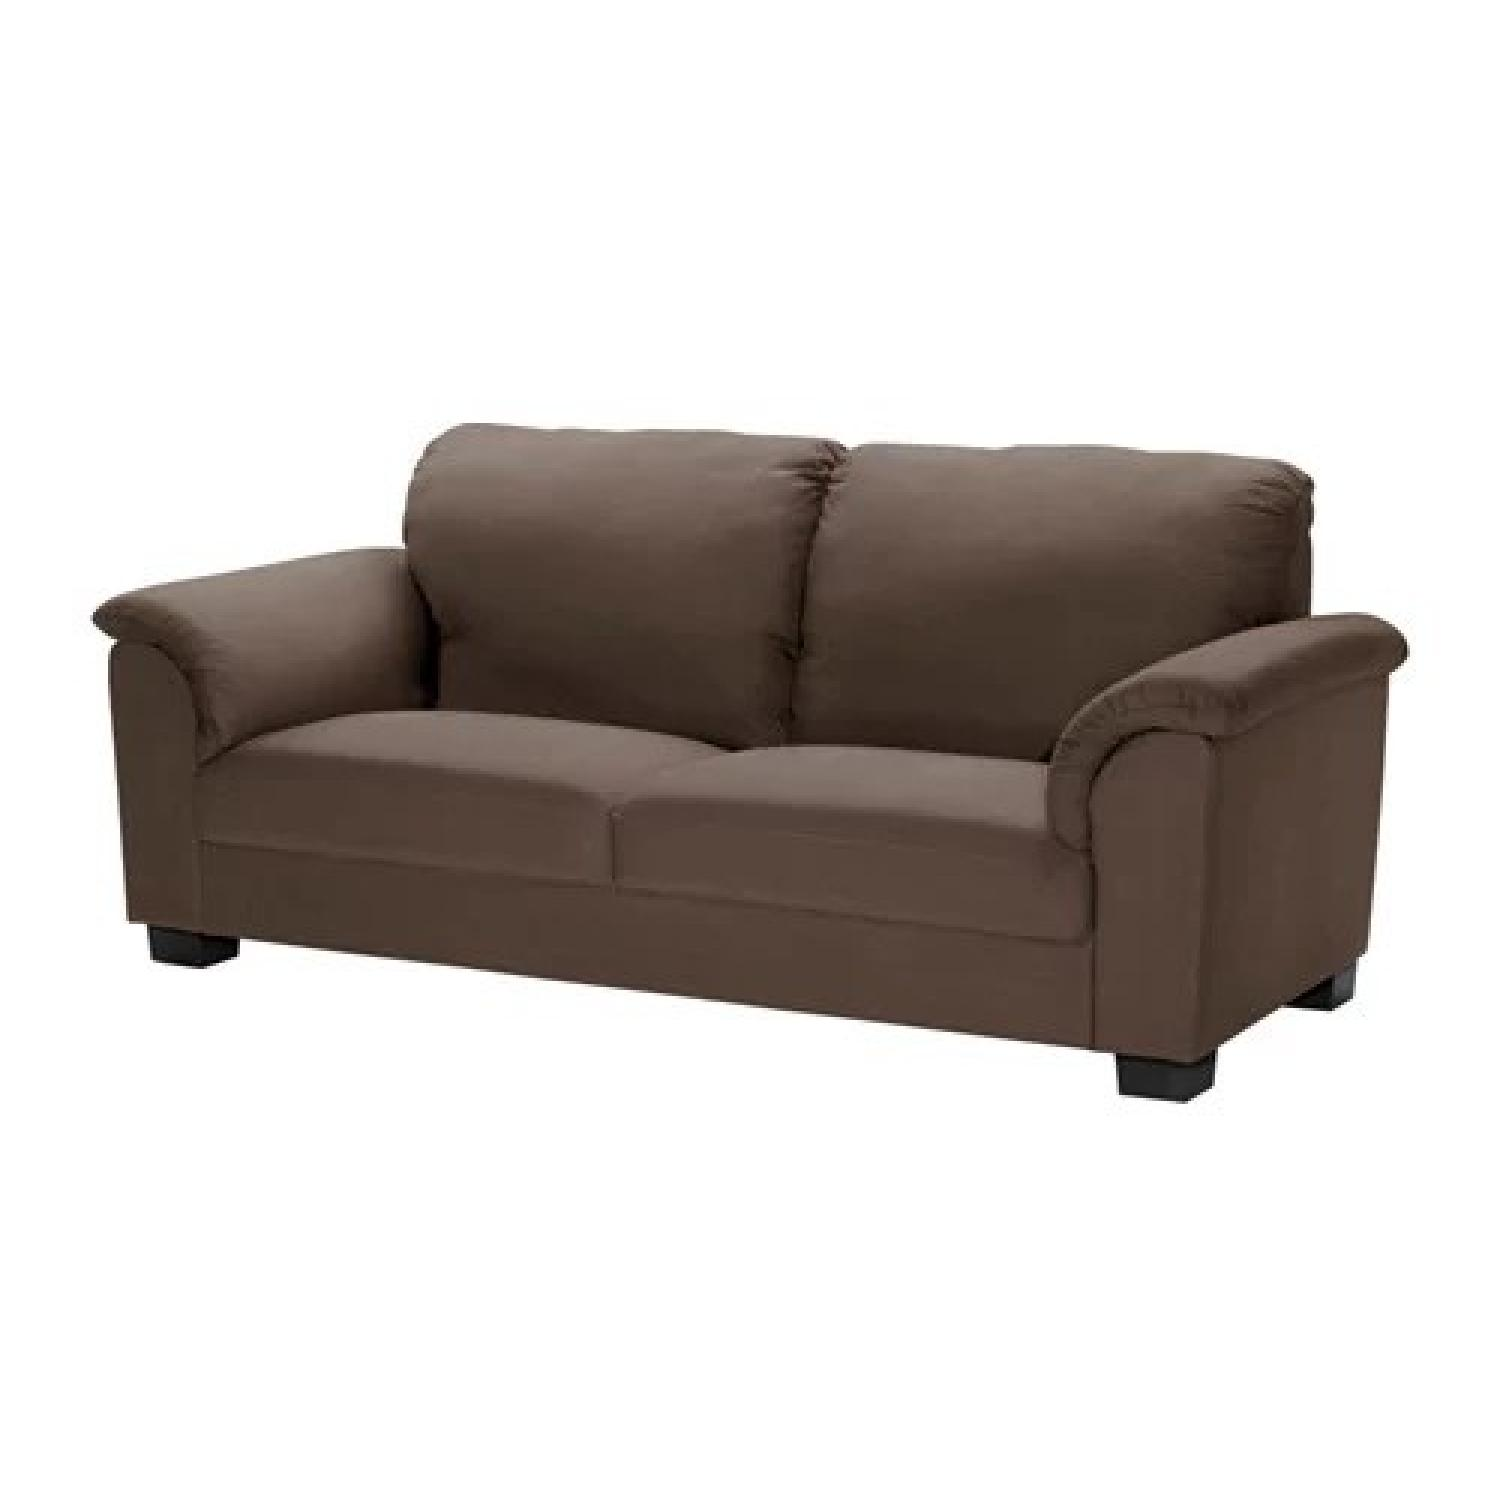 Bettsofa Ikea Blau Ikea Karlstad Brown Sofa Aptdeco